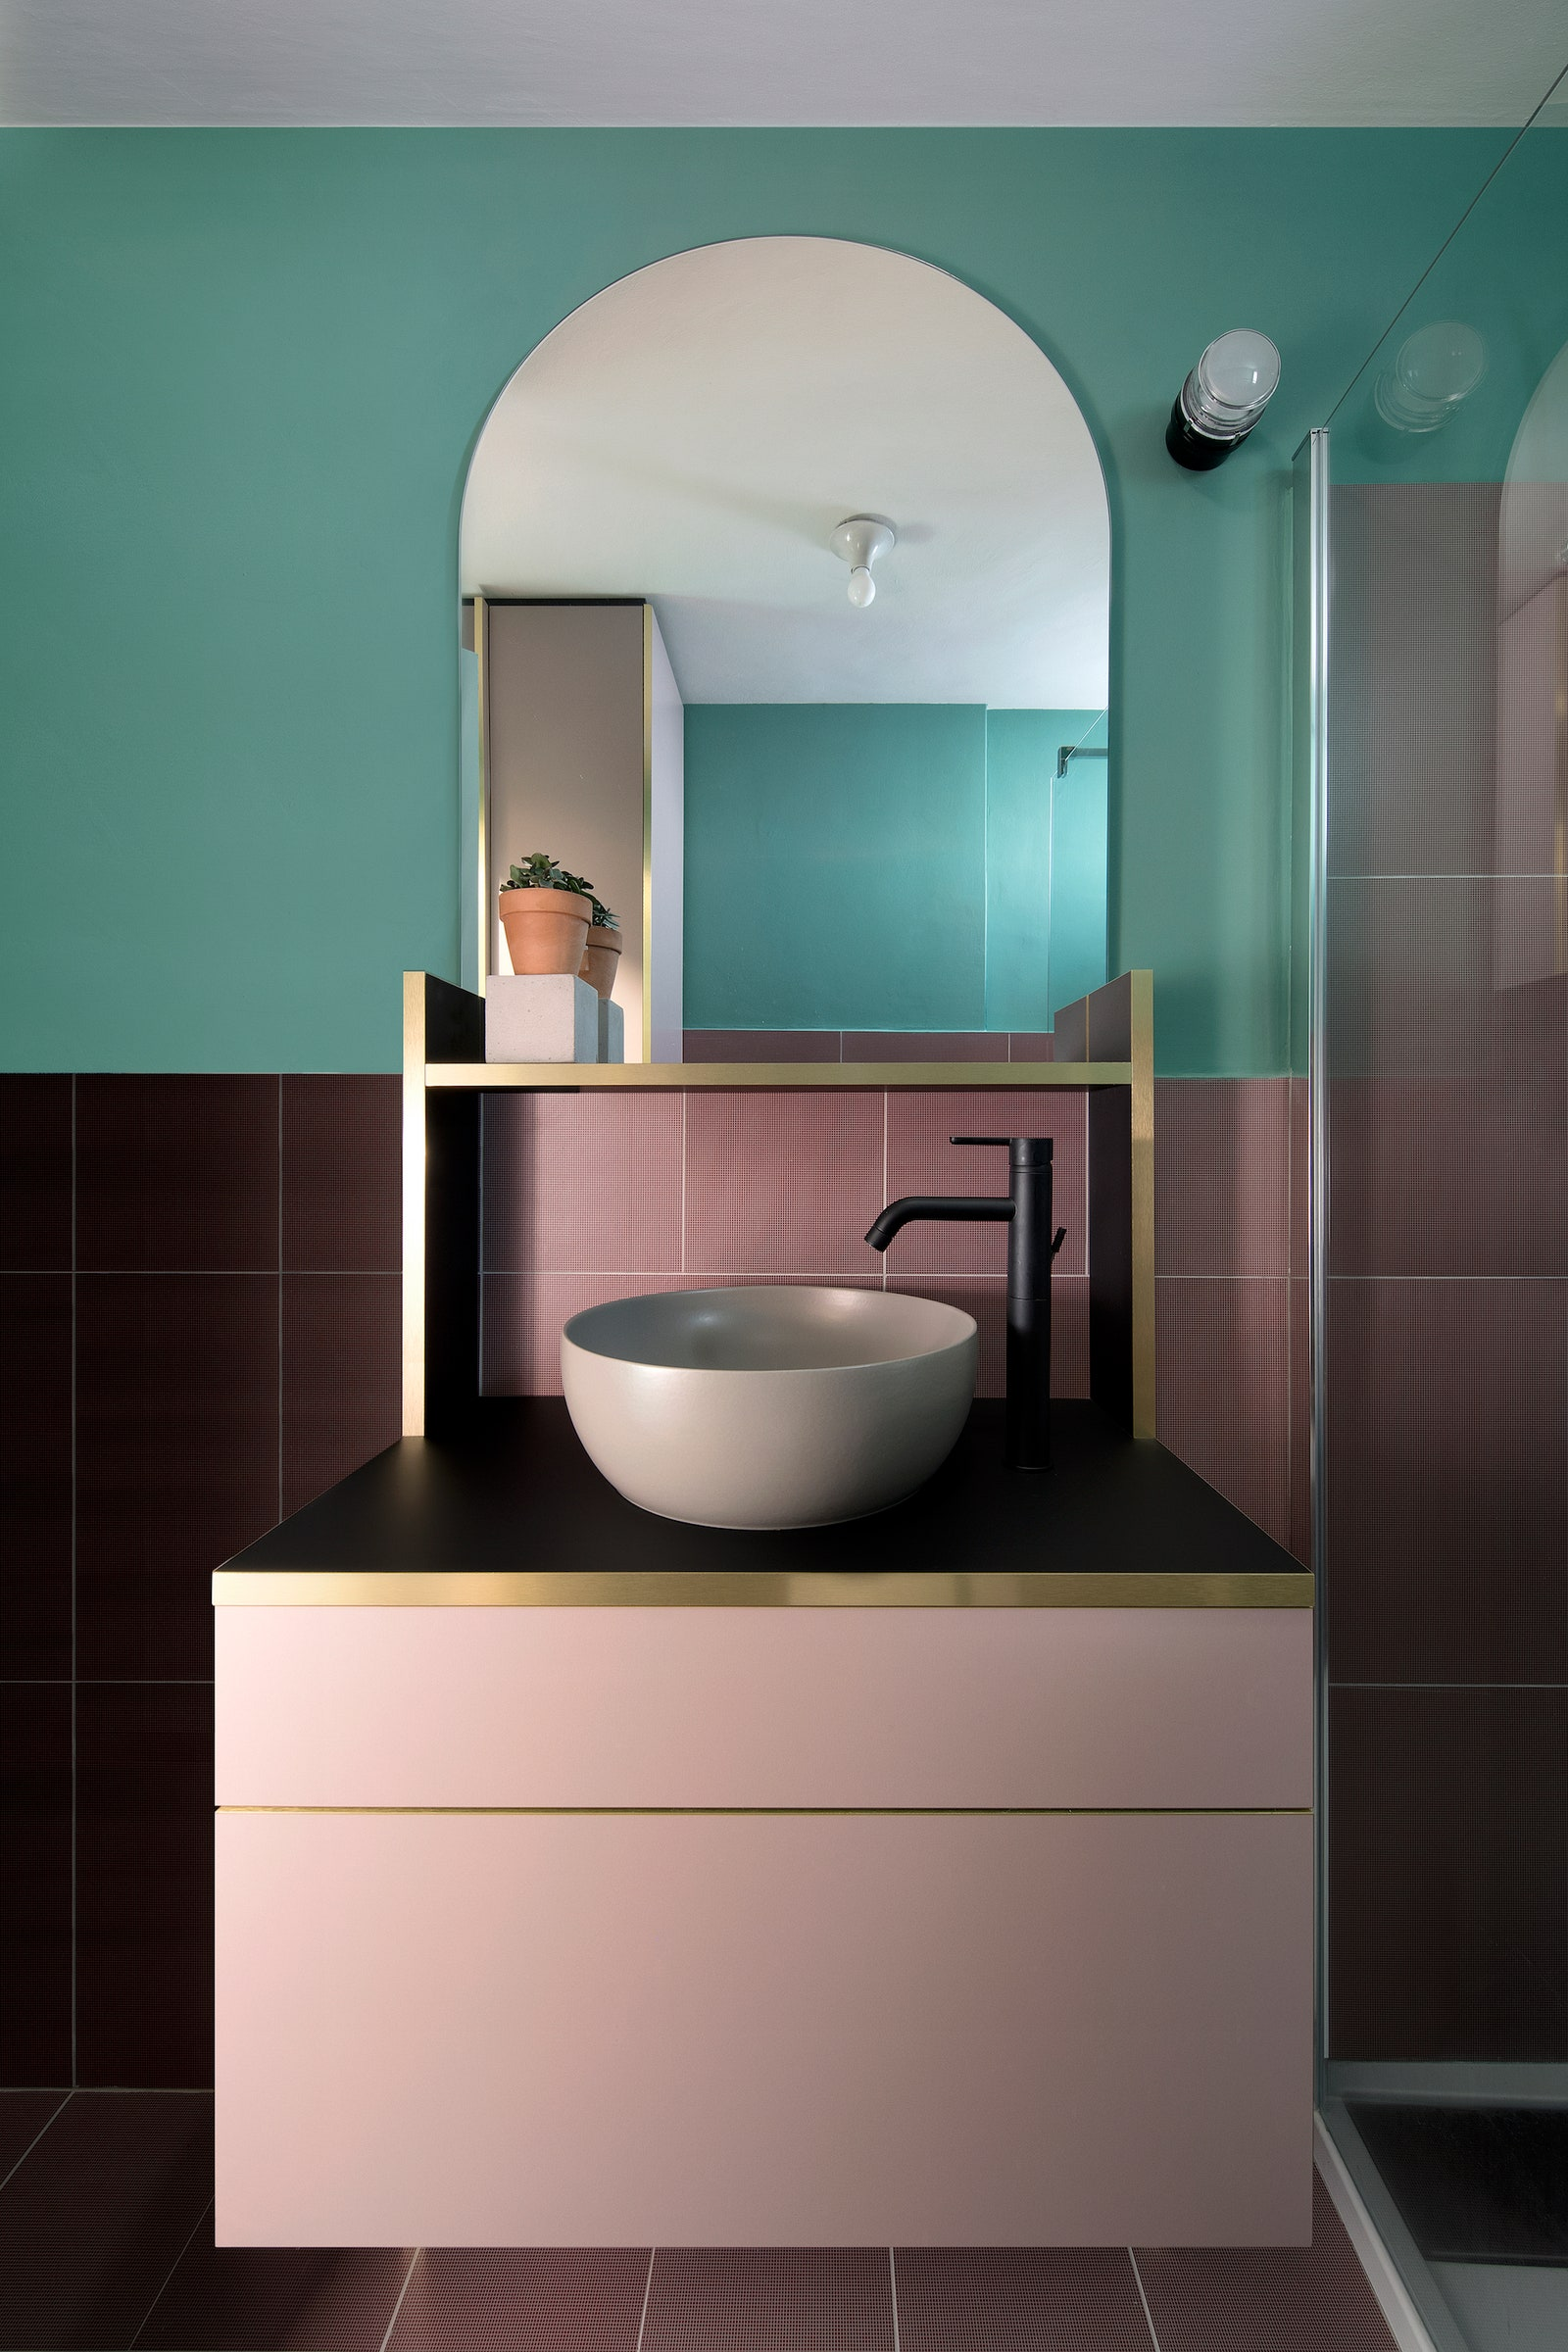 In the bathroom the Graph tiles are by Ceramica Vogue and the Fresnel wall light is by Joe Colombo for Oluce.